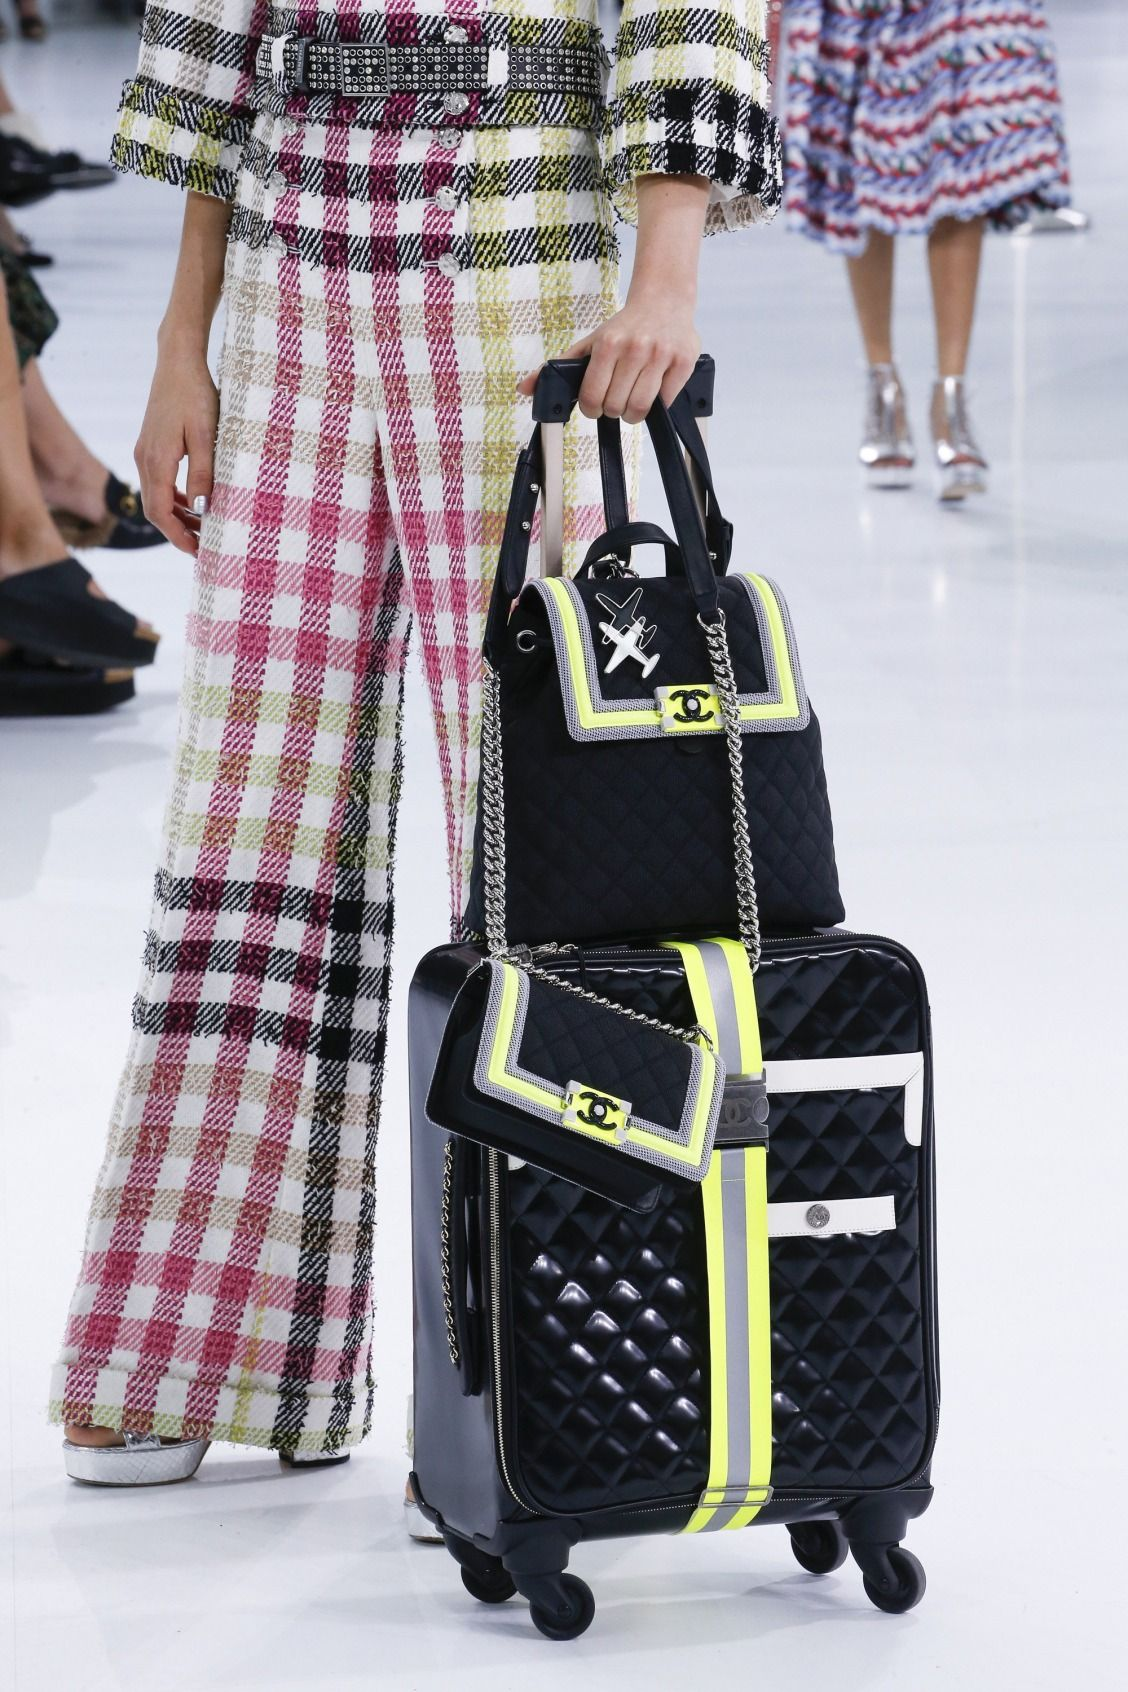 9 of Chanel's Most Travel-Friendly Looks to Pack for Karl Lagerfeld's New Resorts